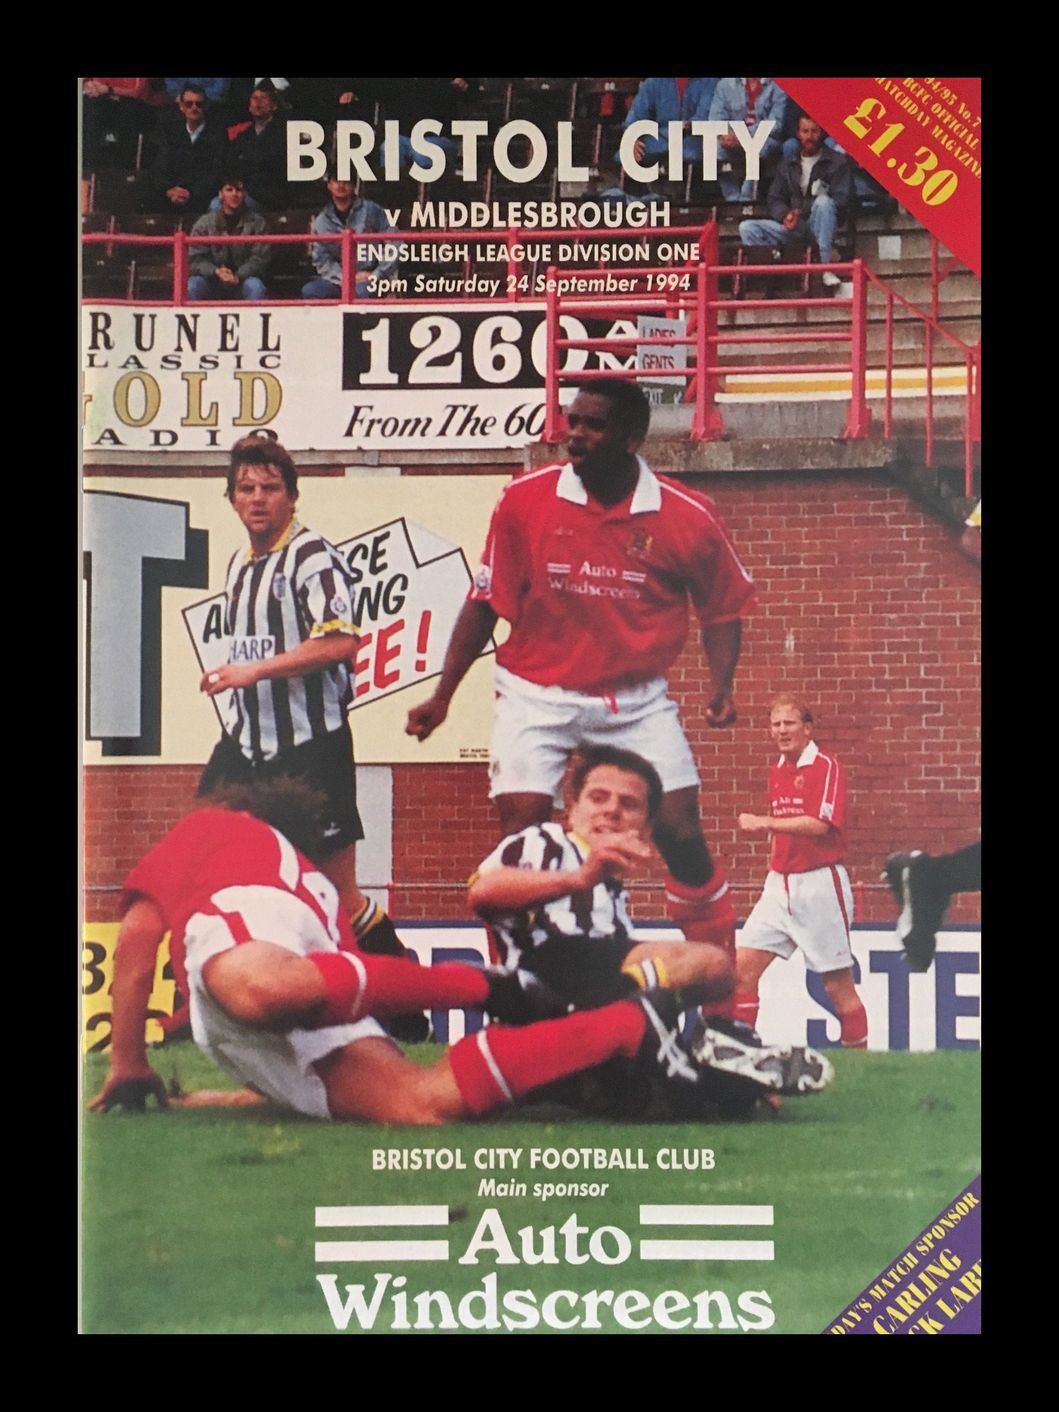 Bristol City v Middlesbrough 24-09-1994 Programme